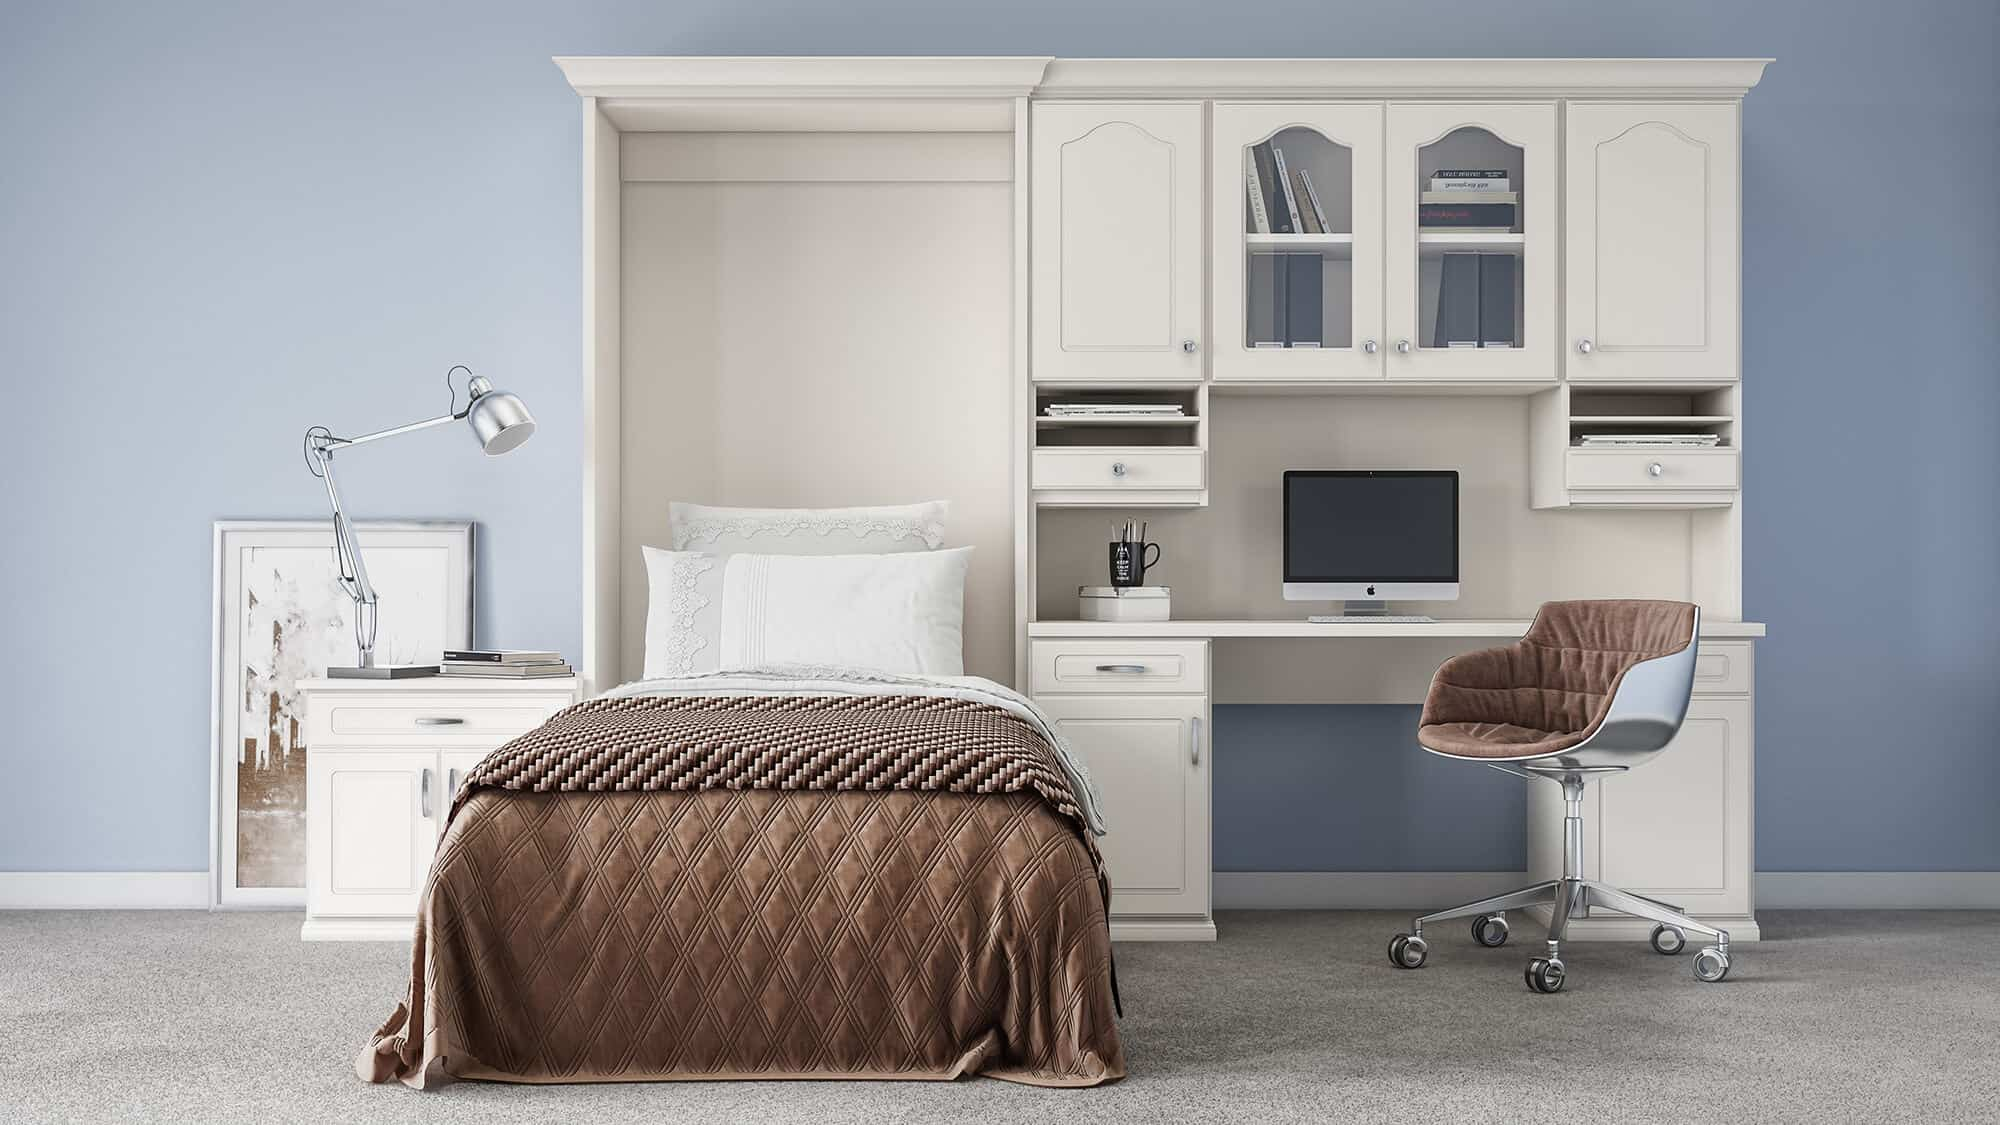 A custom guest room from Closets by Design featuring a wallbed.